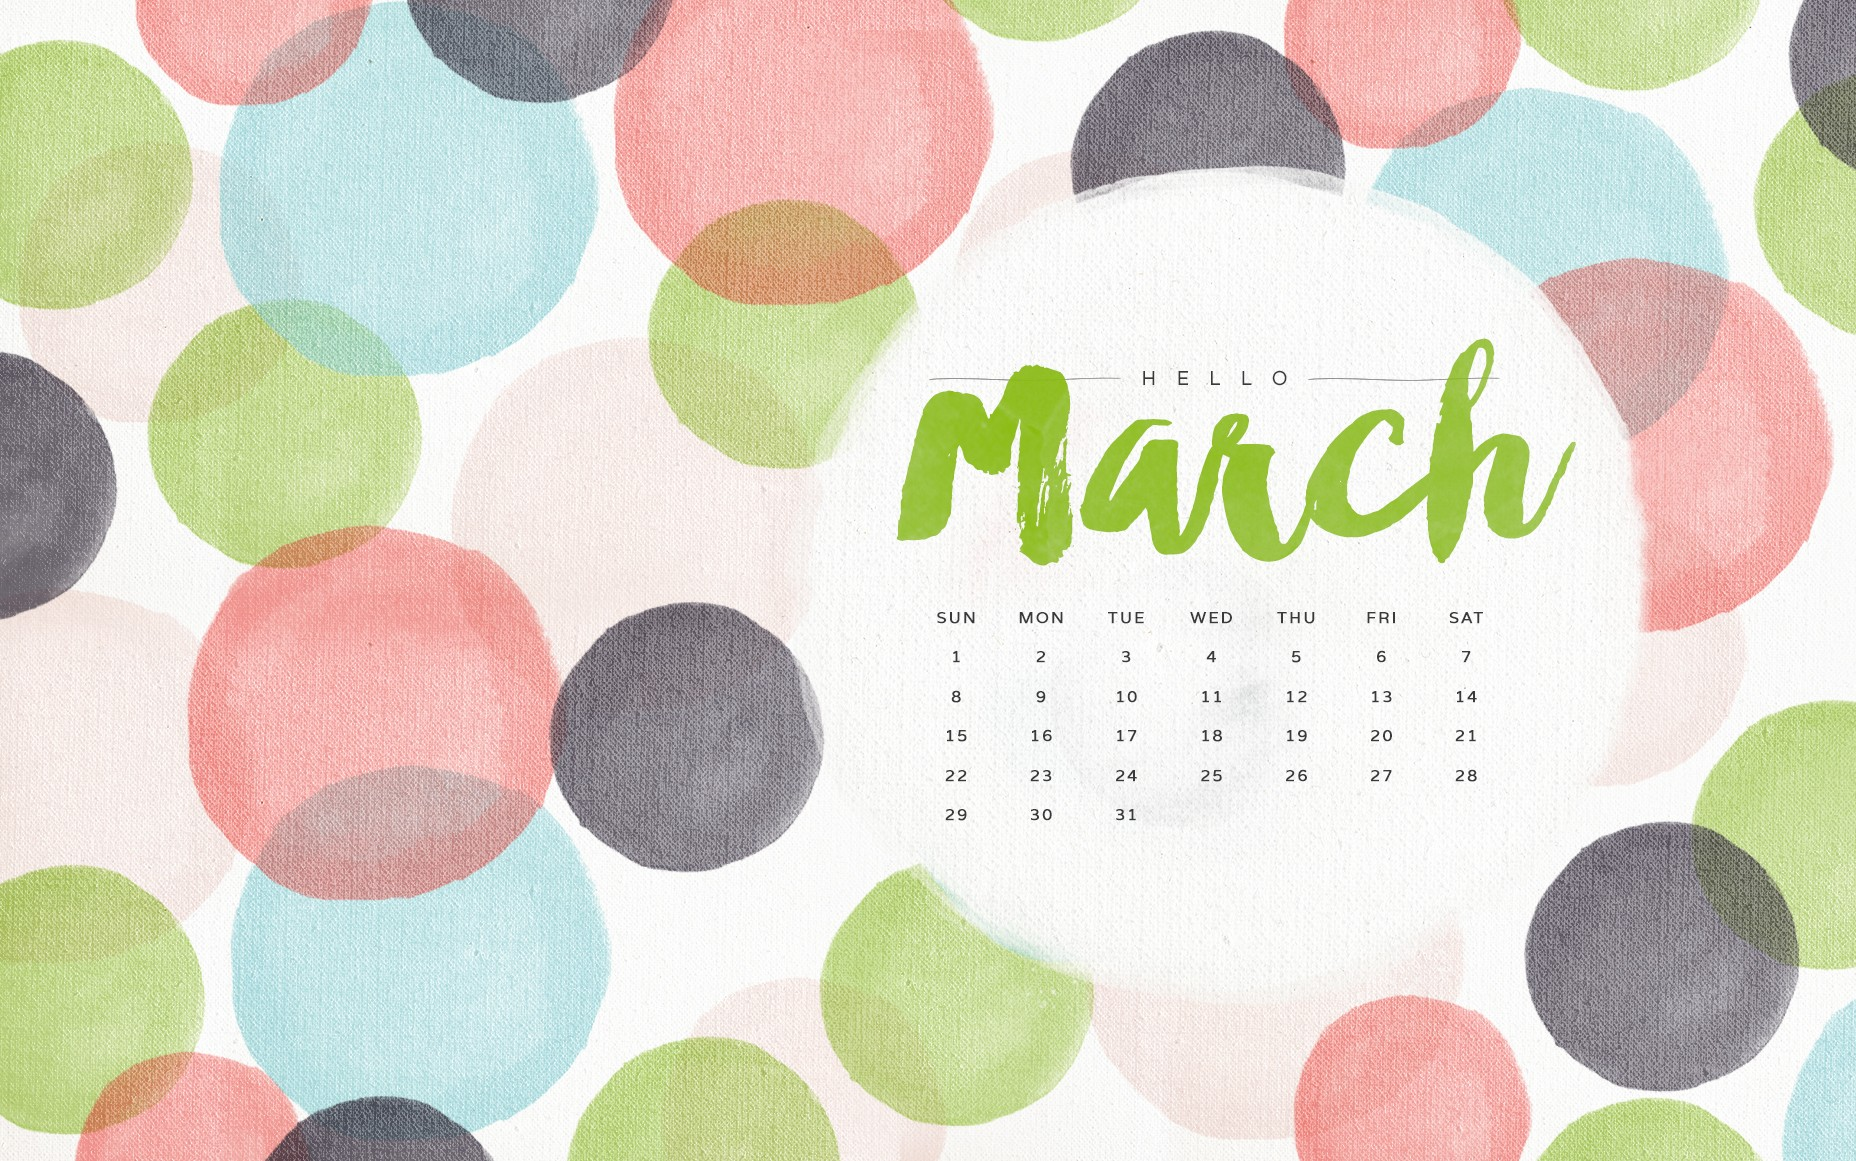 March Calendar Desktop Wallpaper Más Populares List Of Synonyms and Antonyms Of the Word iPhone Background March Of March Calendar Desktop Wallpaper Más Recientes Free Wallpapers Discover New Designs Every Month